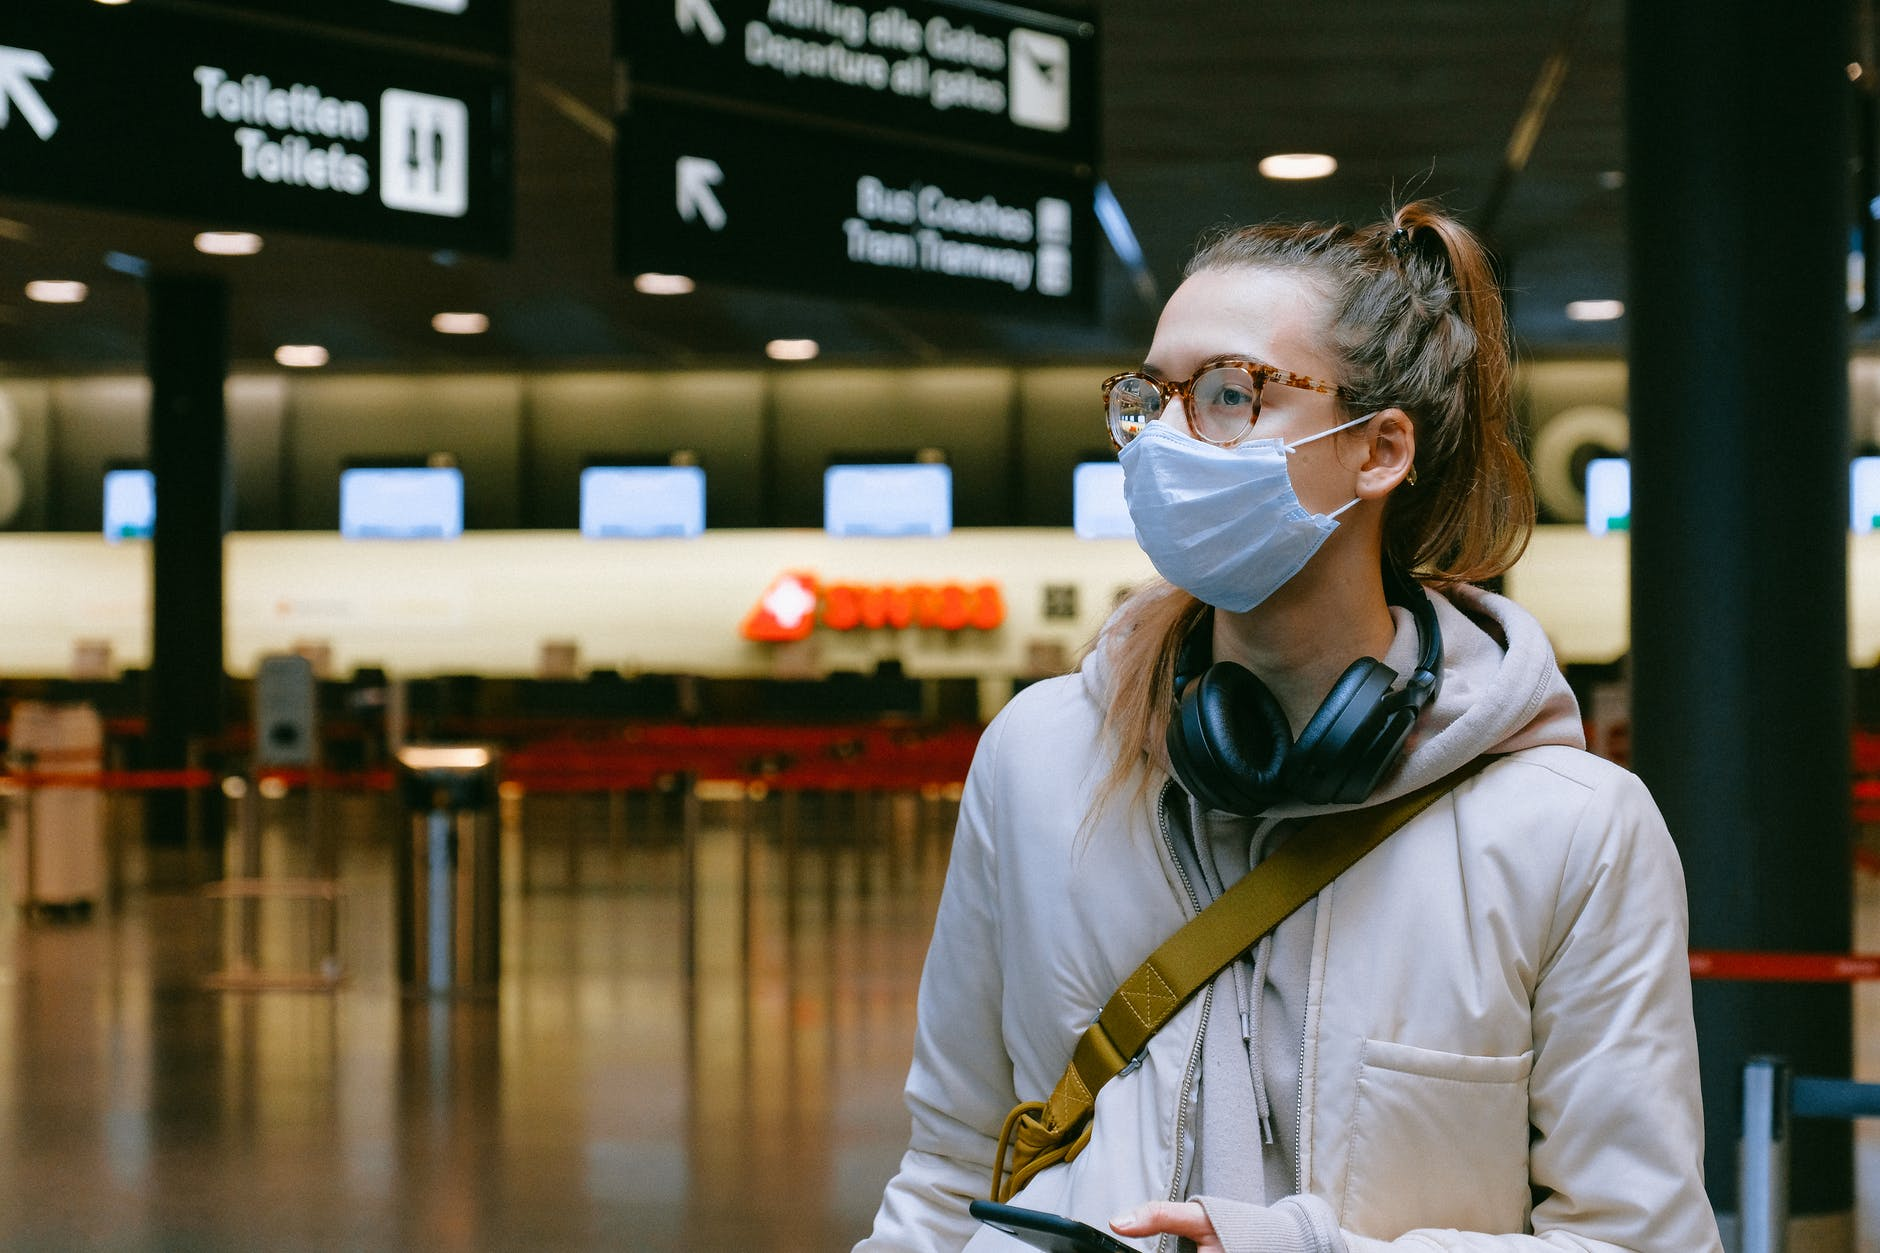 Airlines have implemented mask-wearing mandates for all passengers on board  © |  Anna Shvets/Pexels